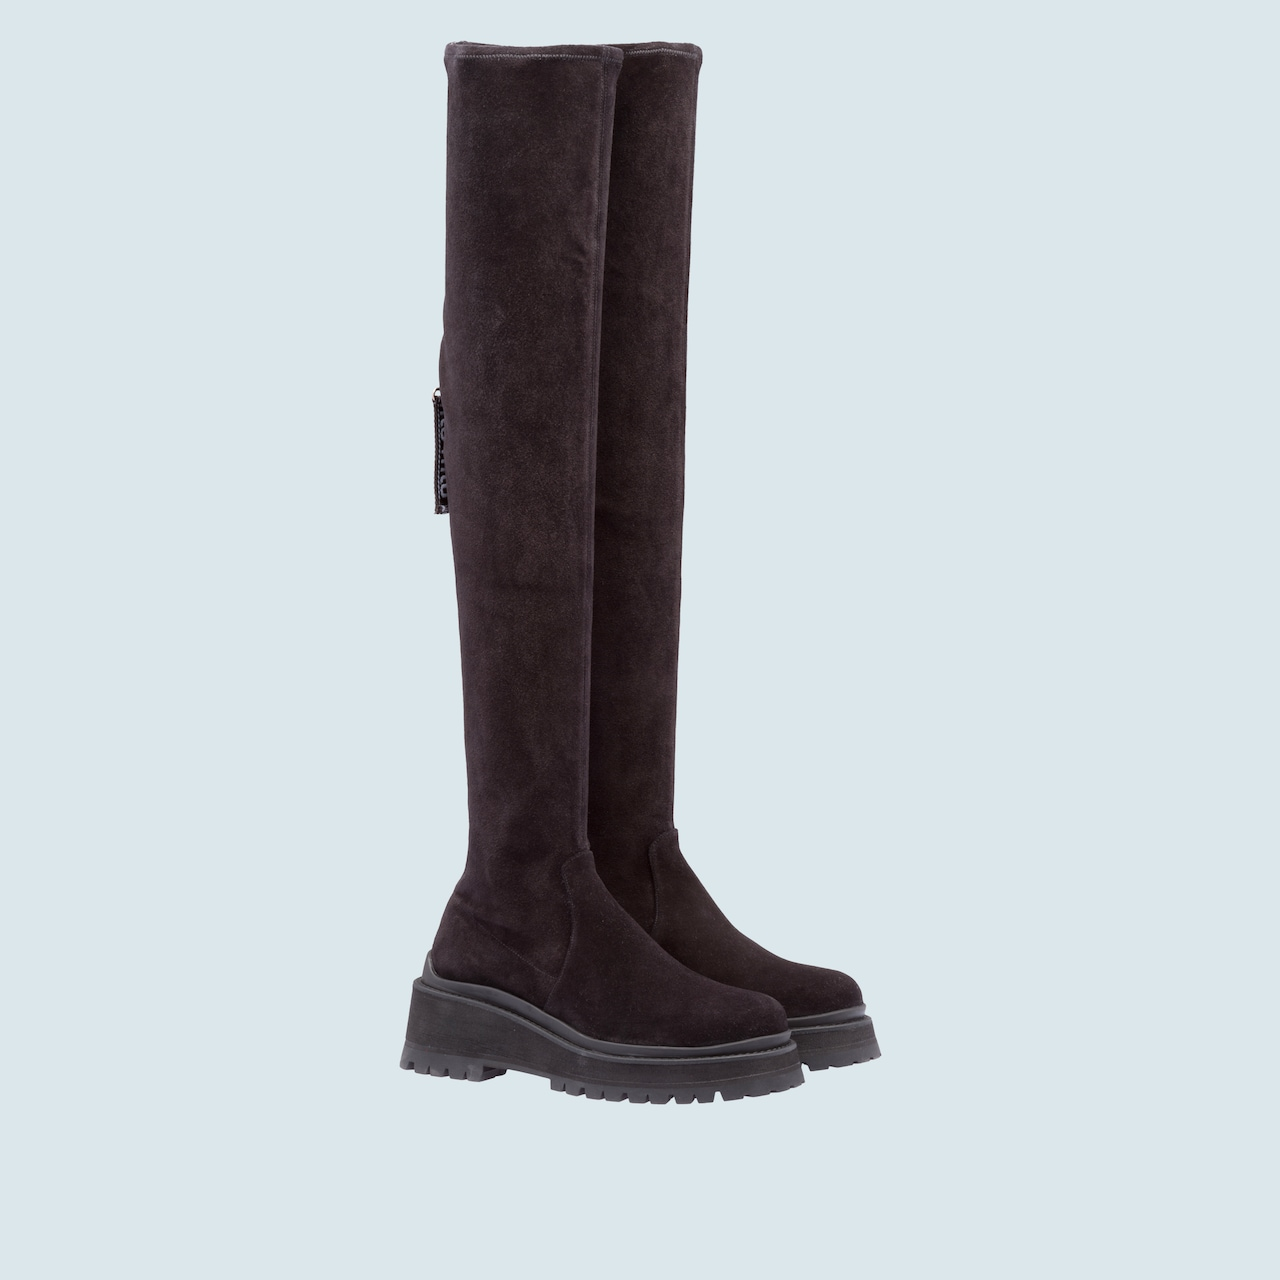 Fashion style Miu miu collection boots for woman